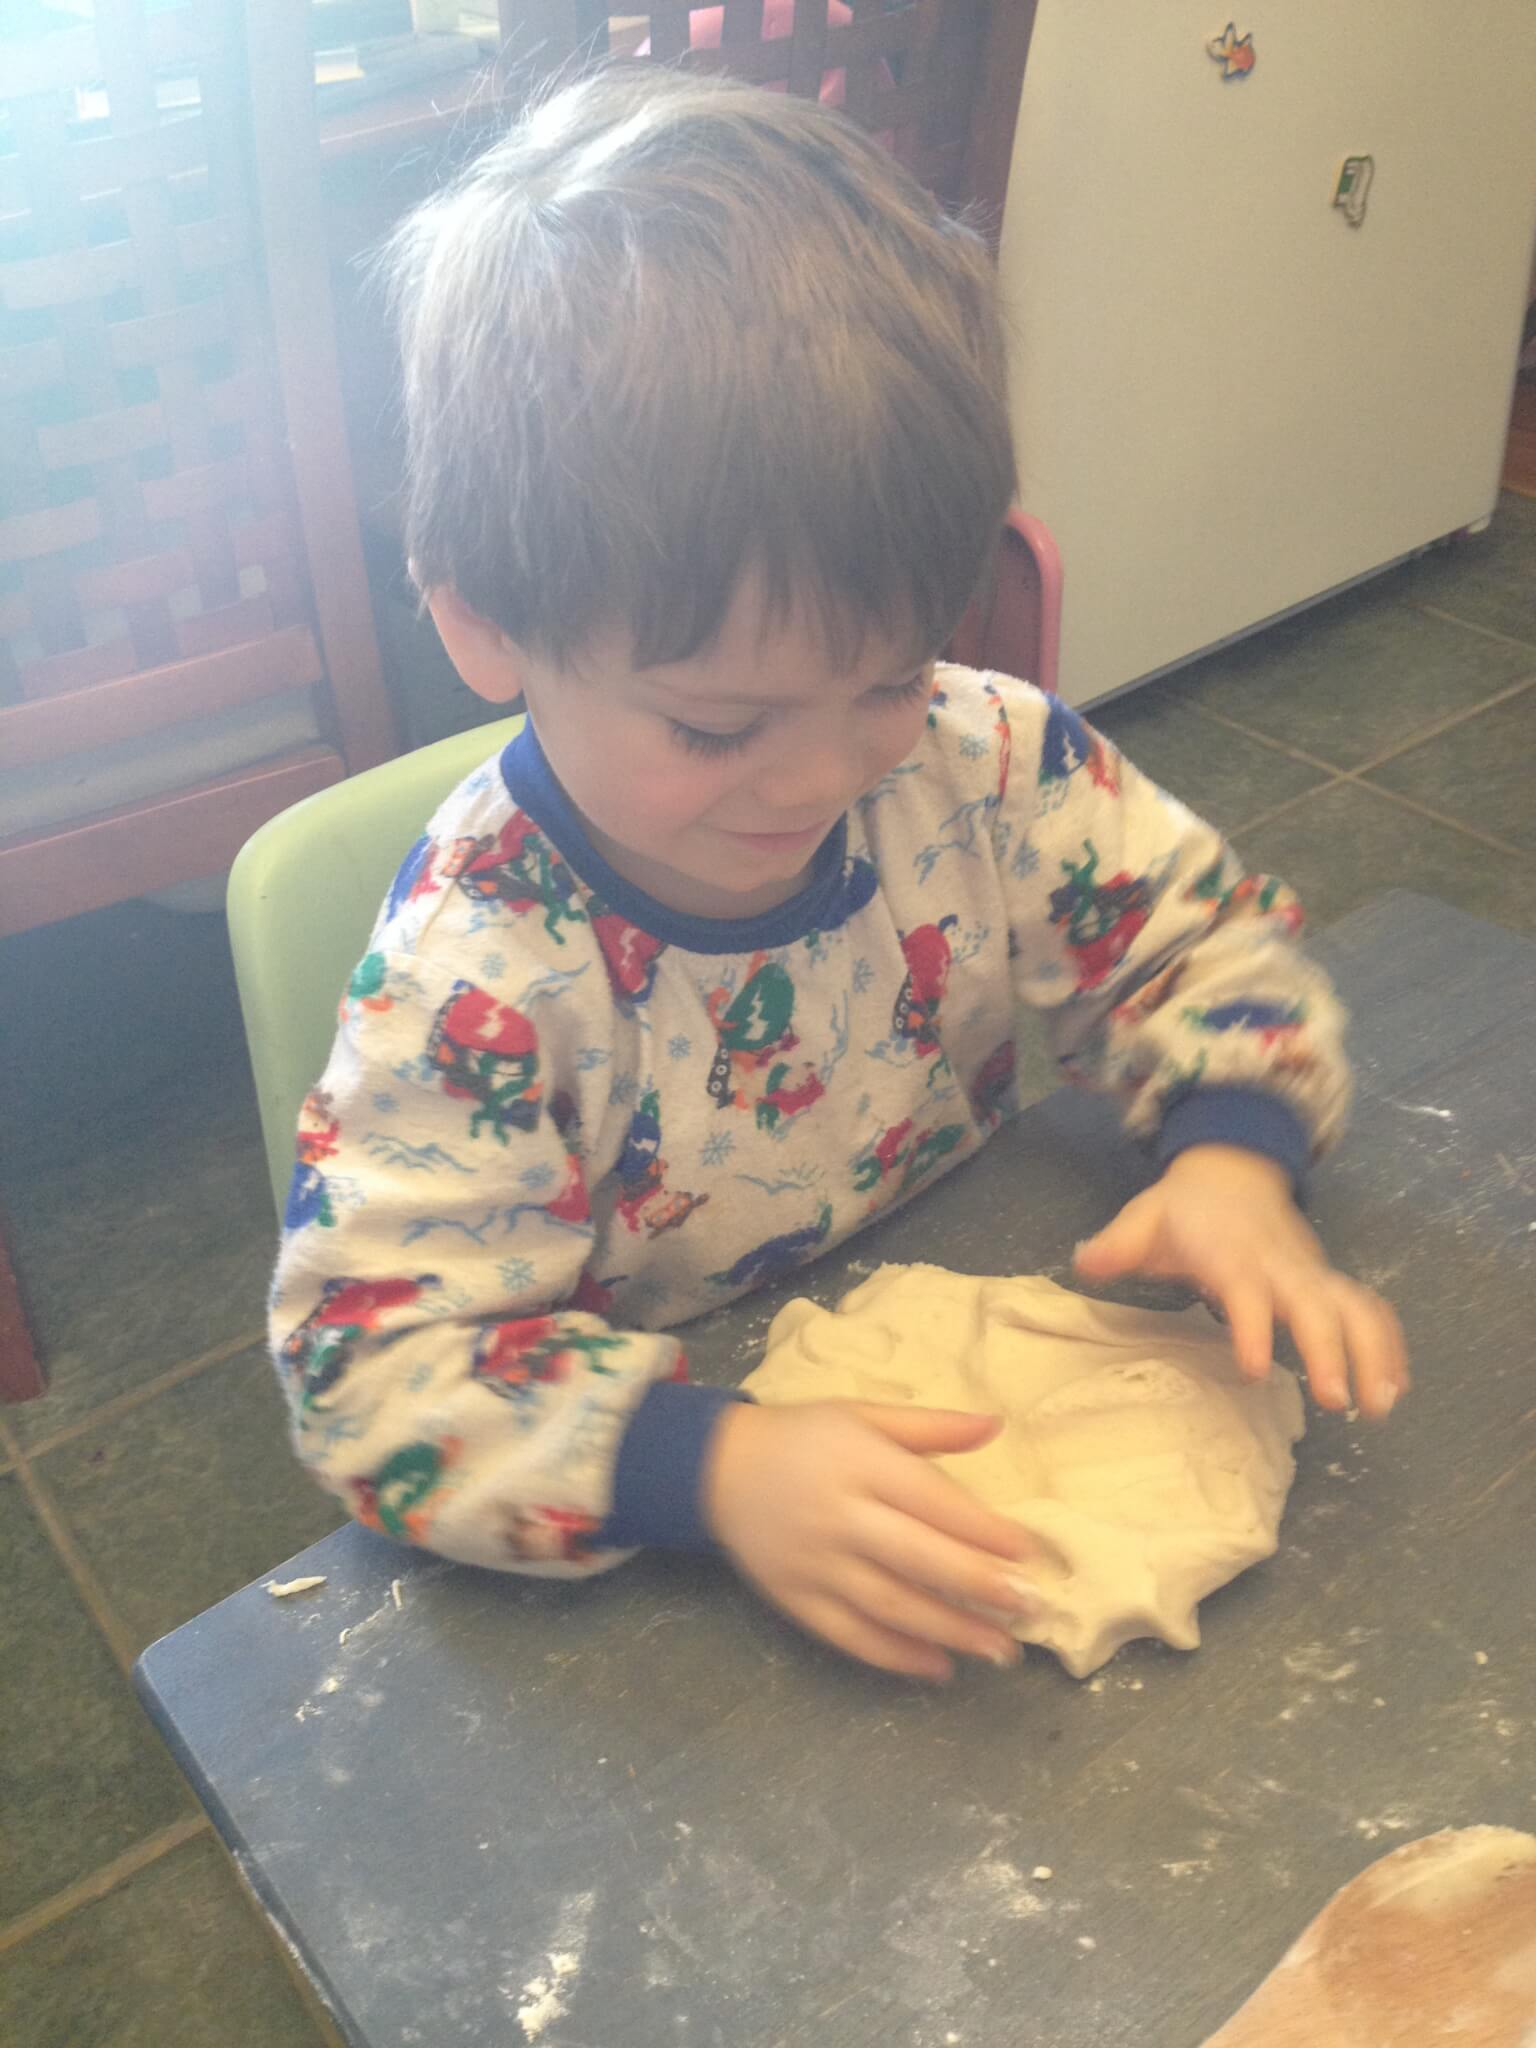 Let kids help make homemade play dough - an amazing play recipe with great sensory benefits!